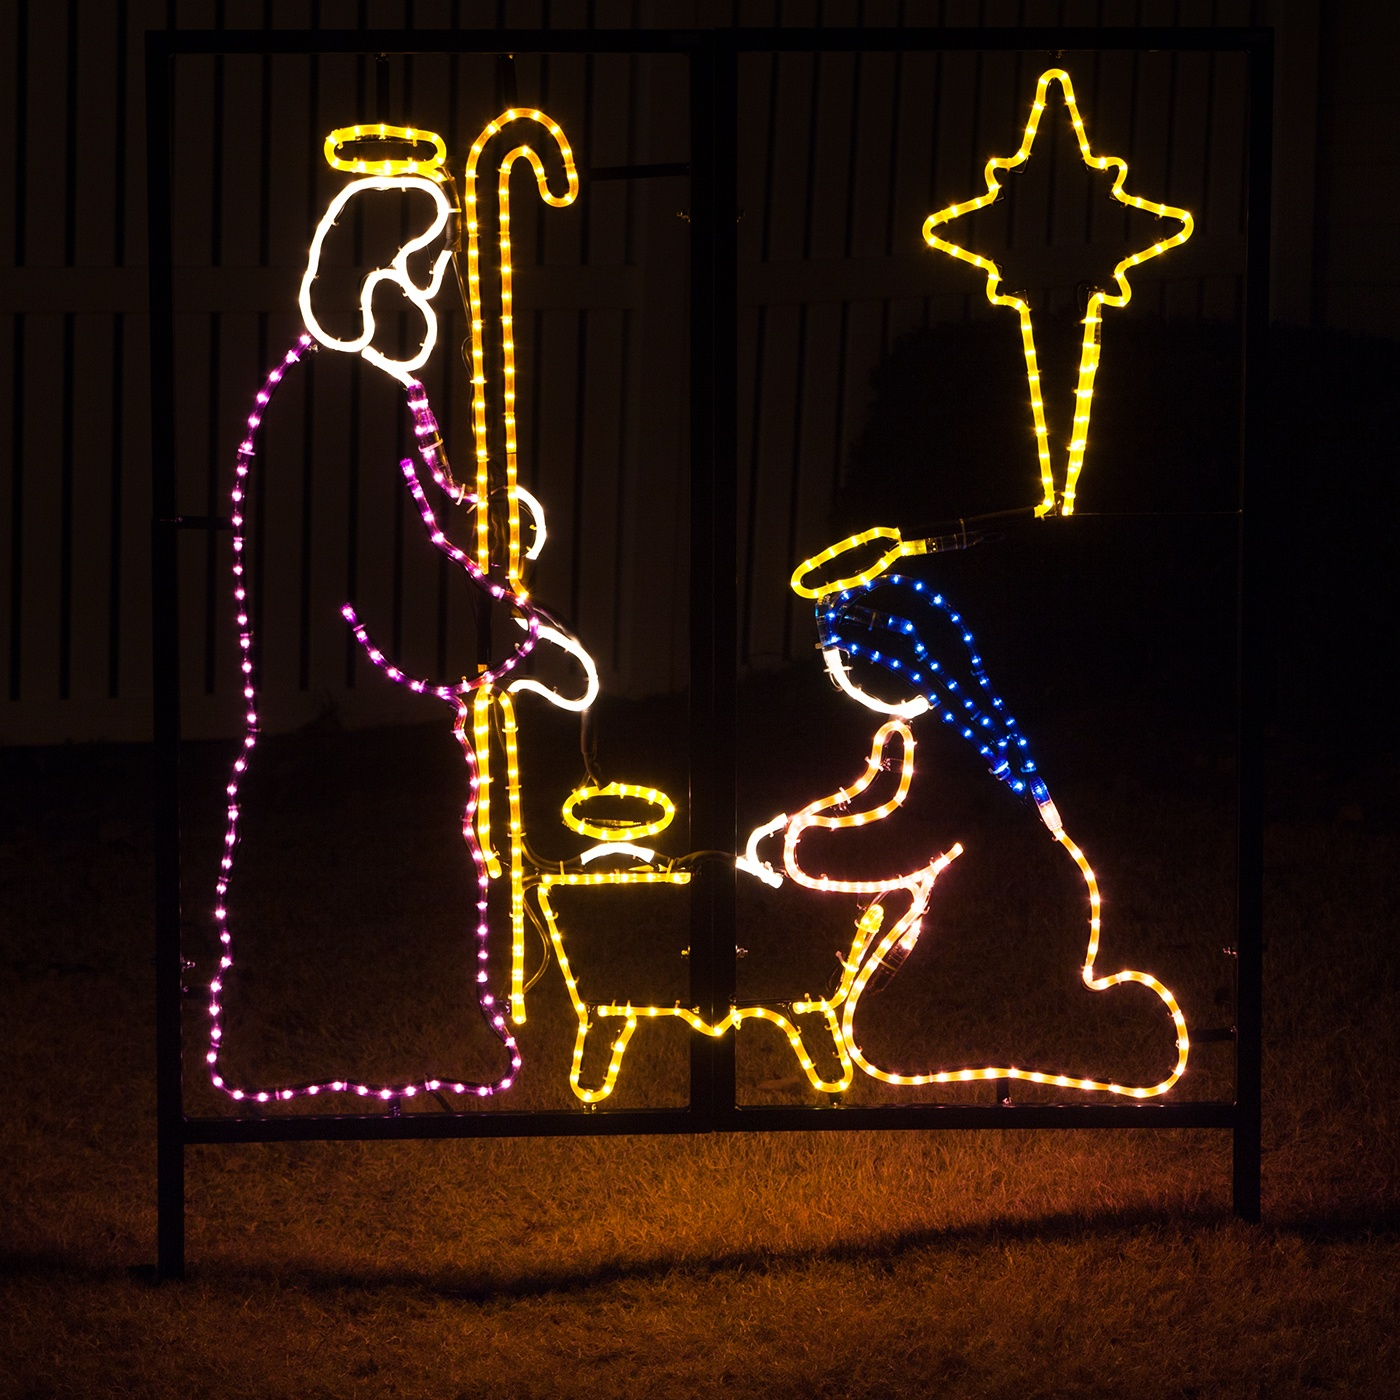 Outdoor Decoration - Nativity Manger Scene